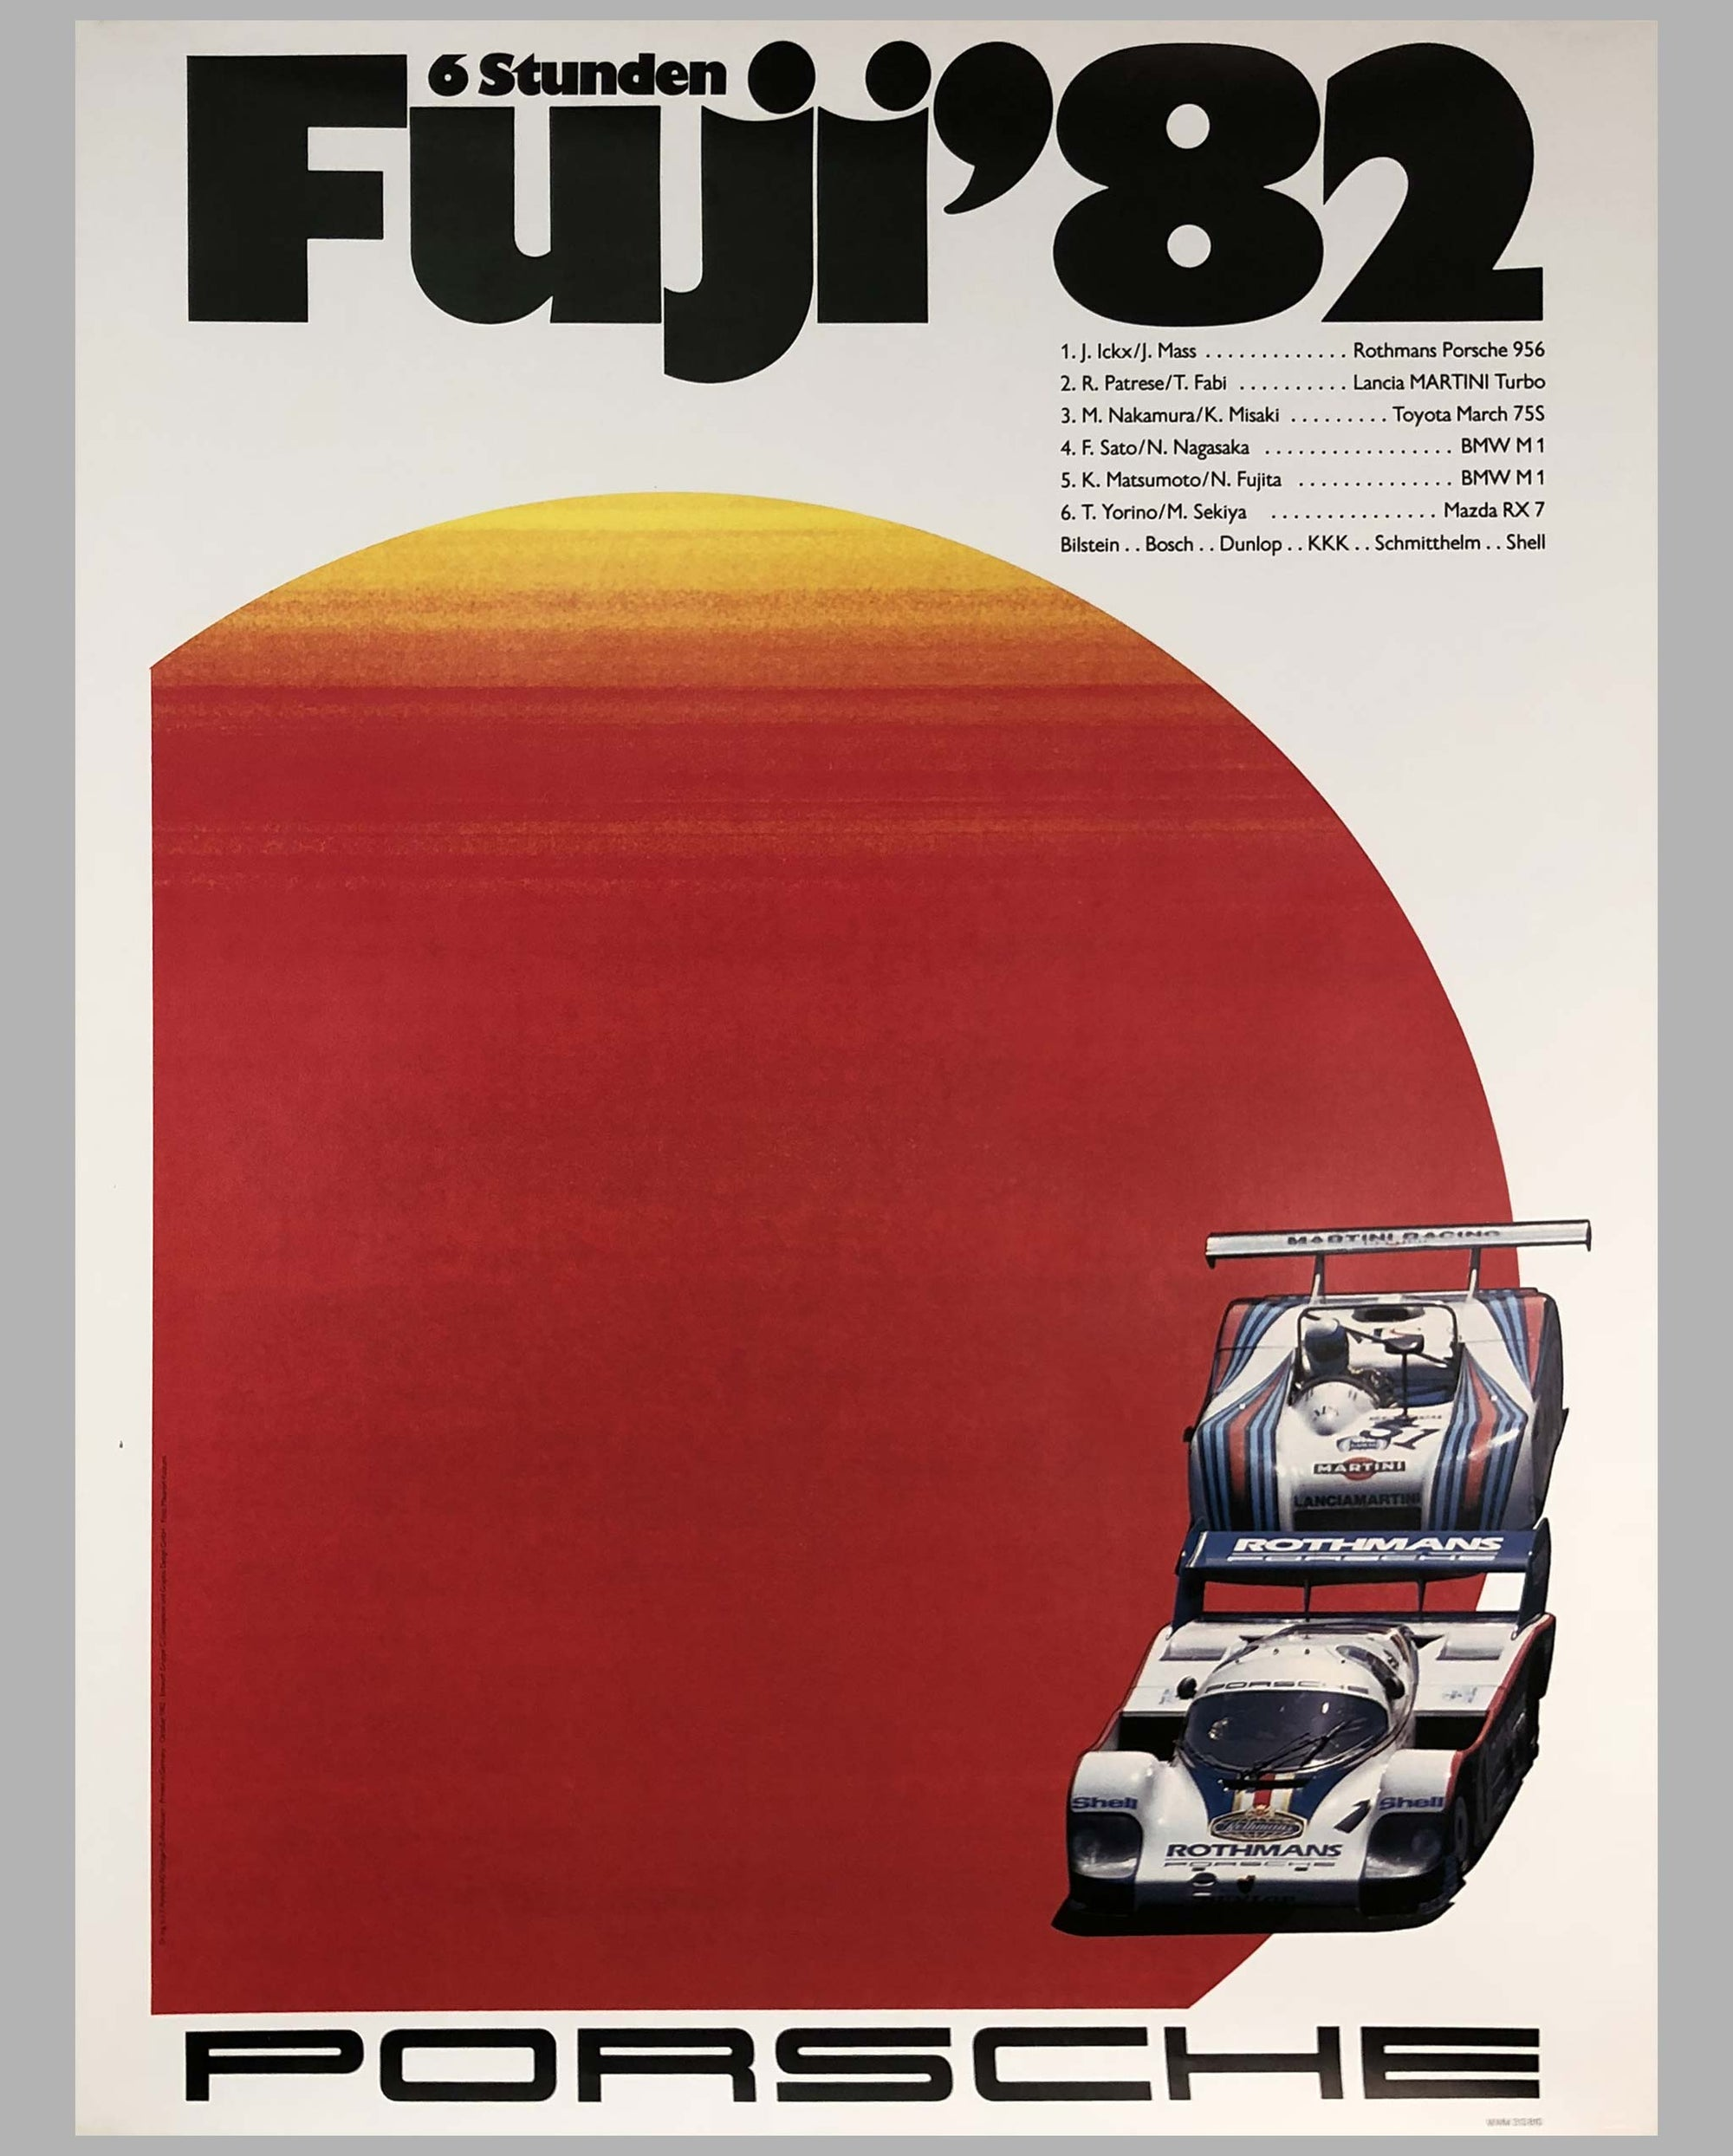 1982 Porsche Factory Victory Poster 6 Hours of Fuji